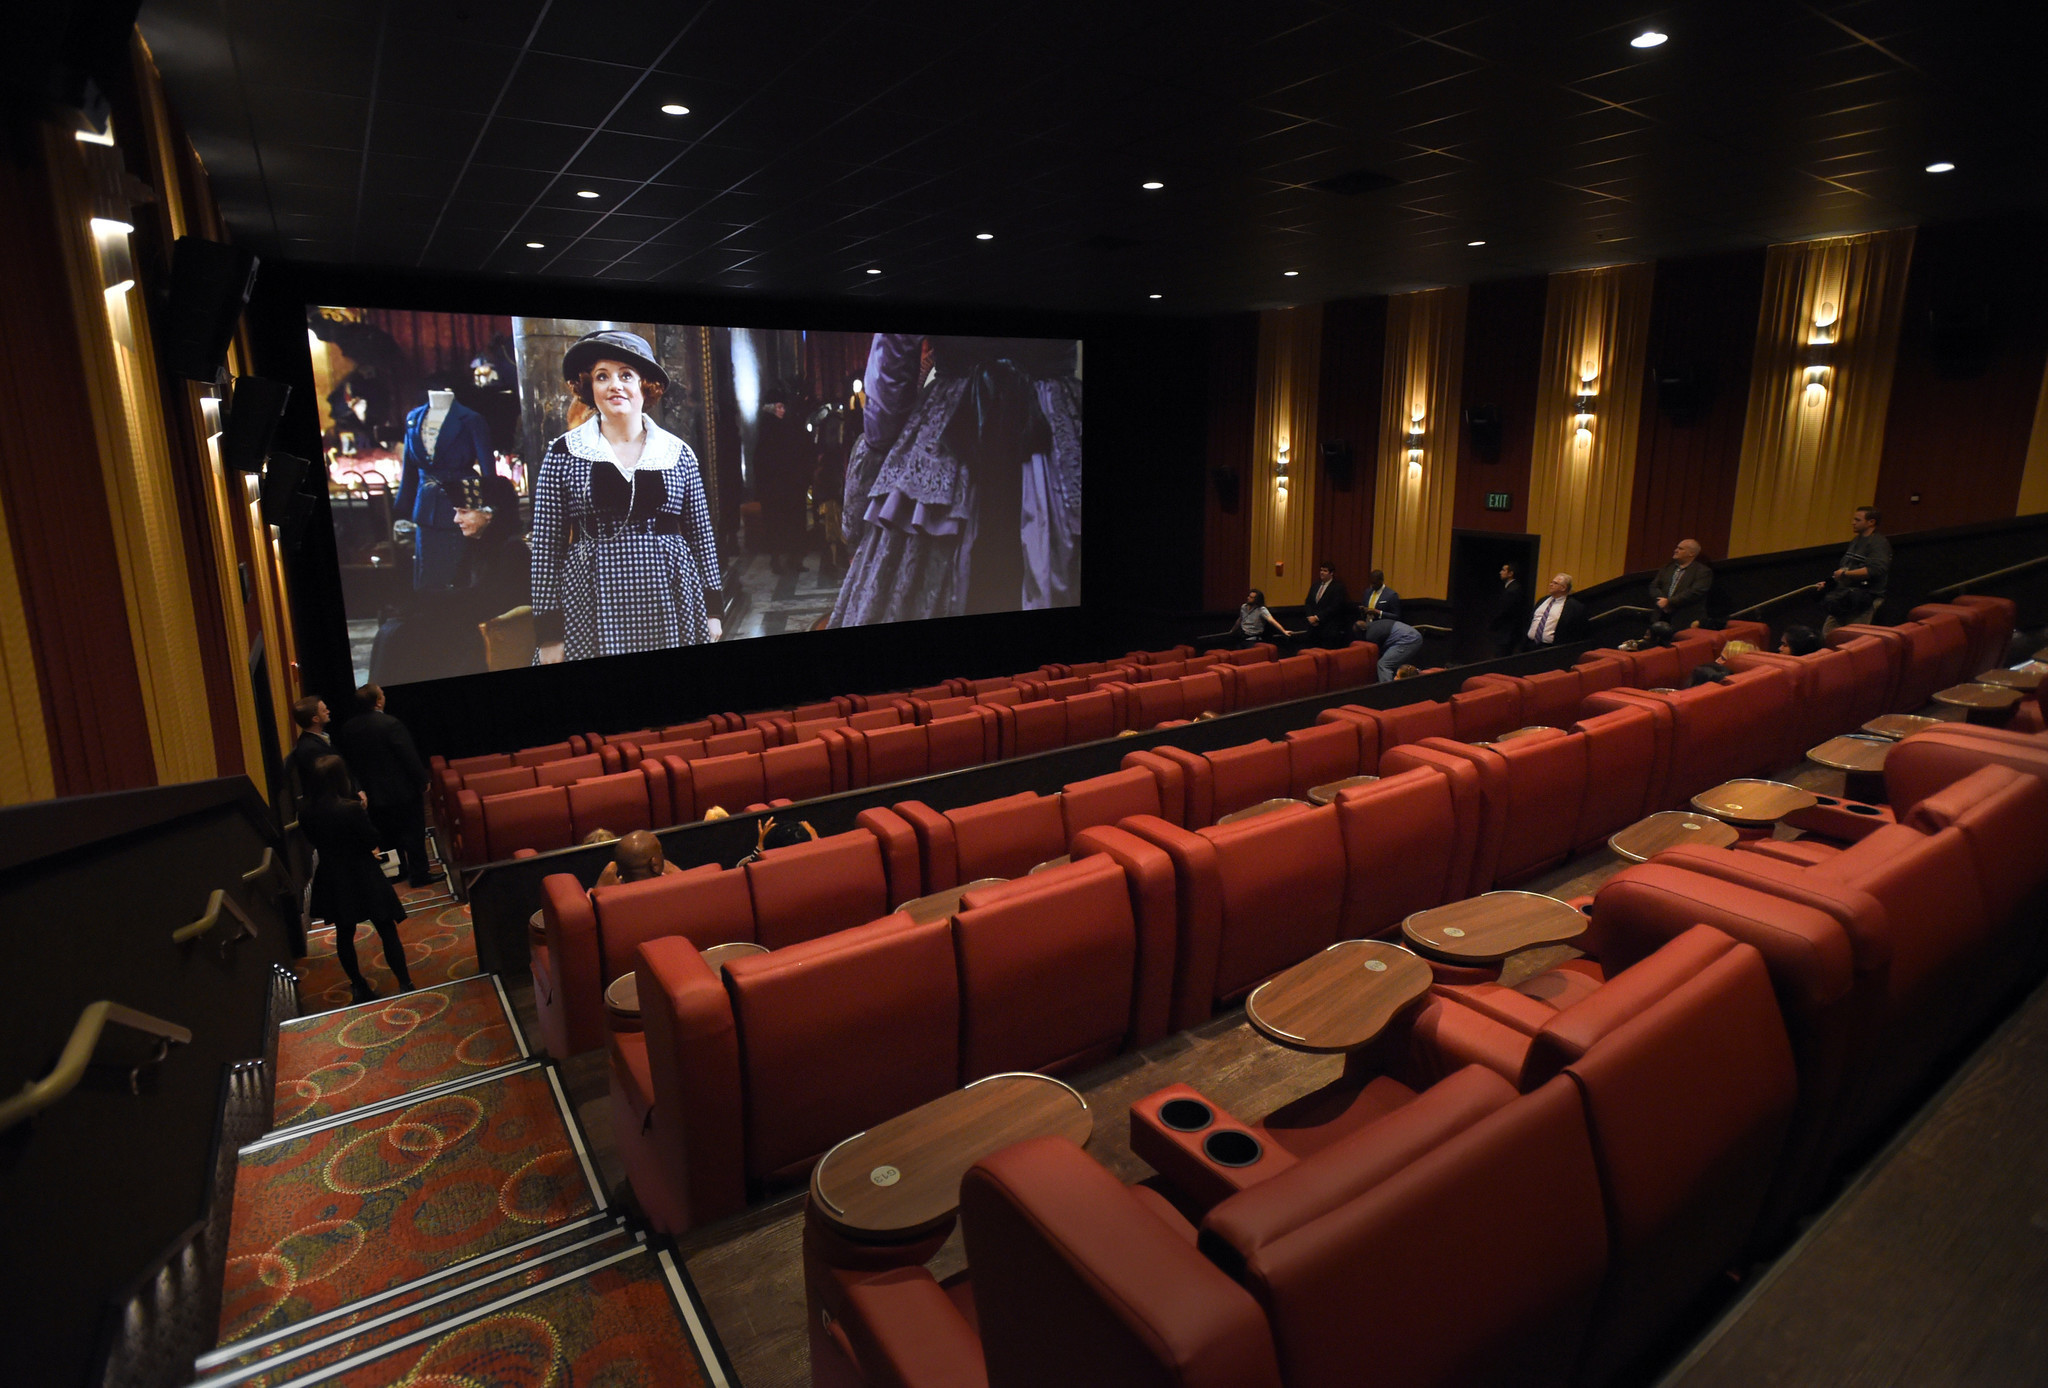 Upscale movie theater